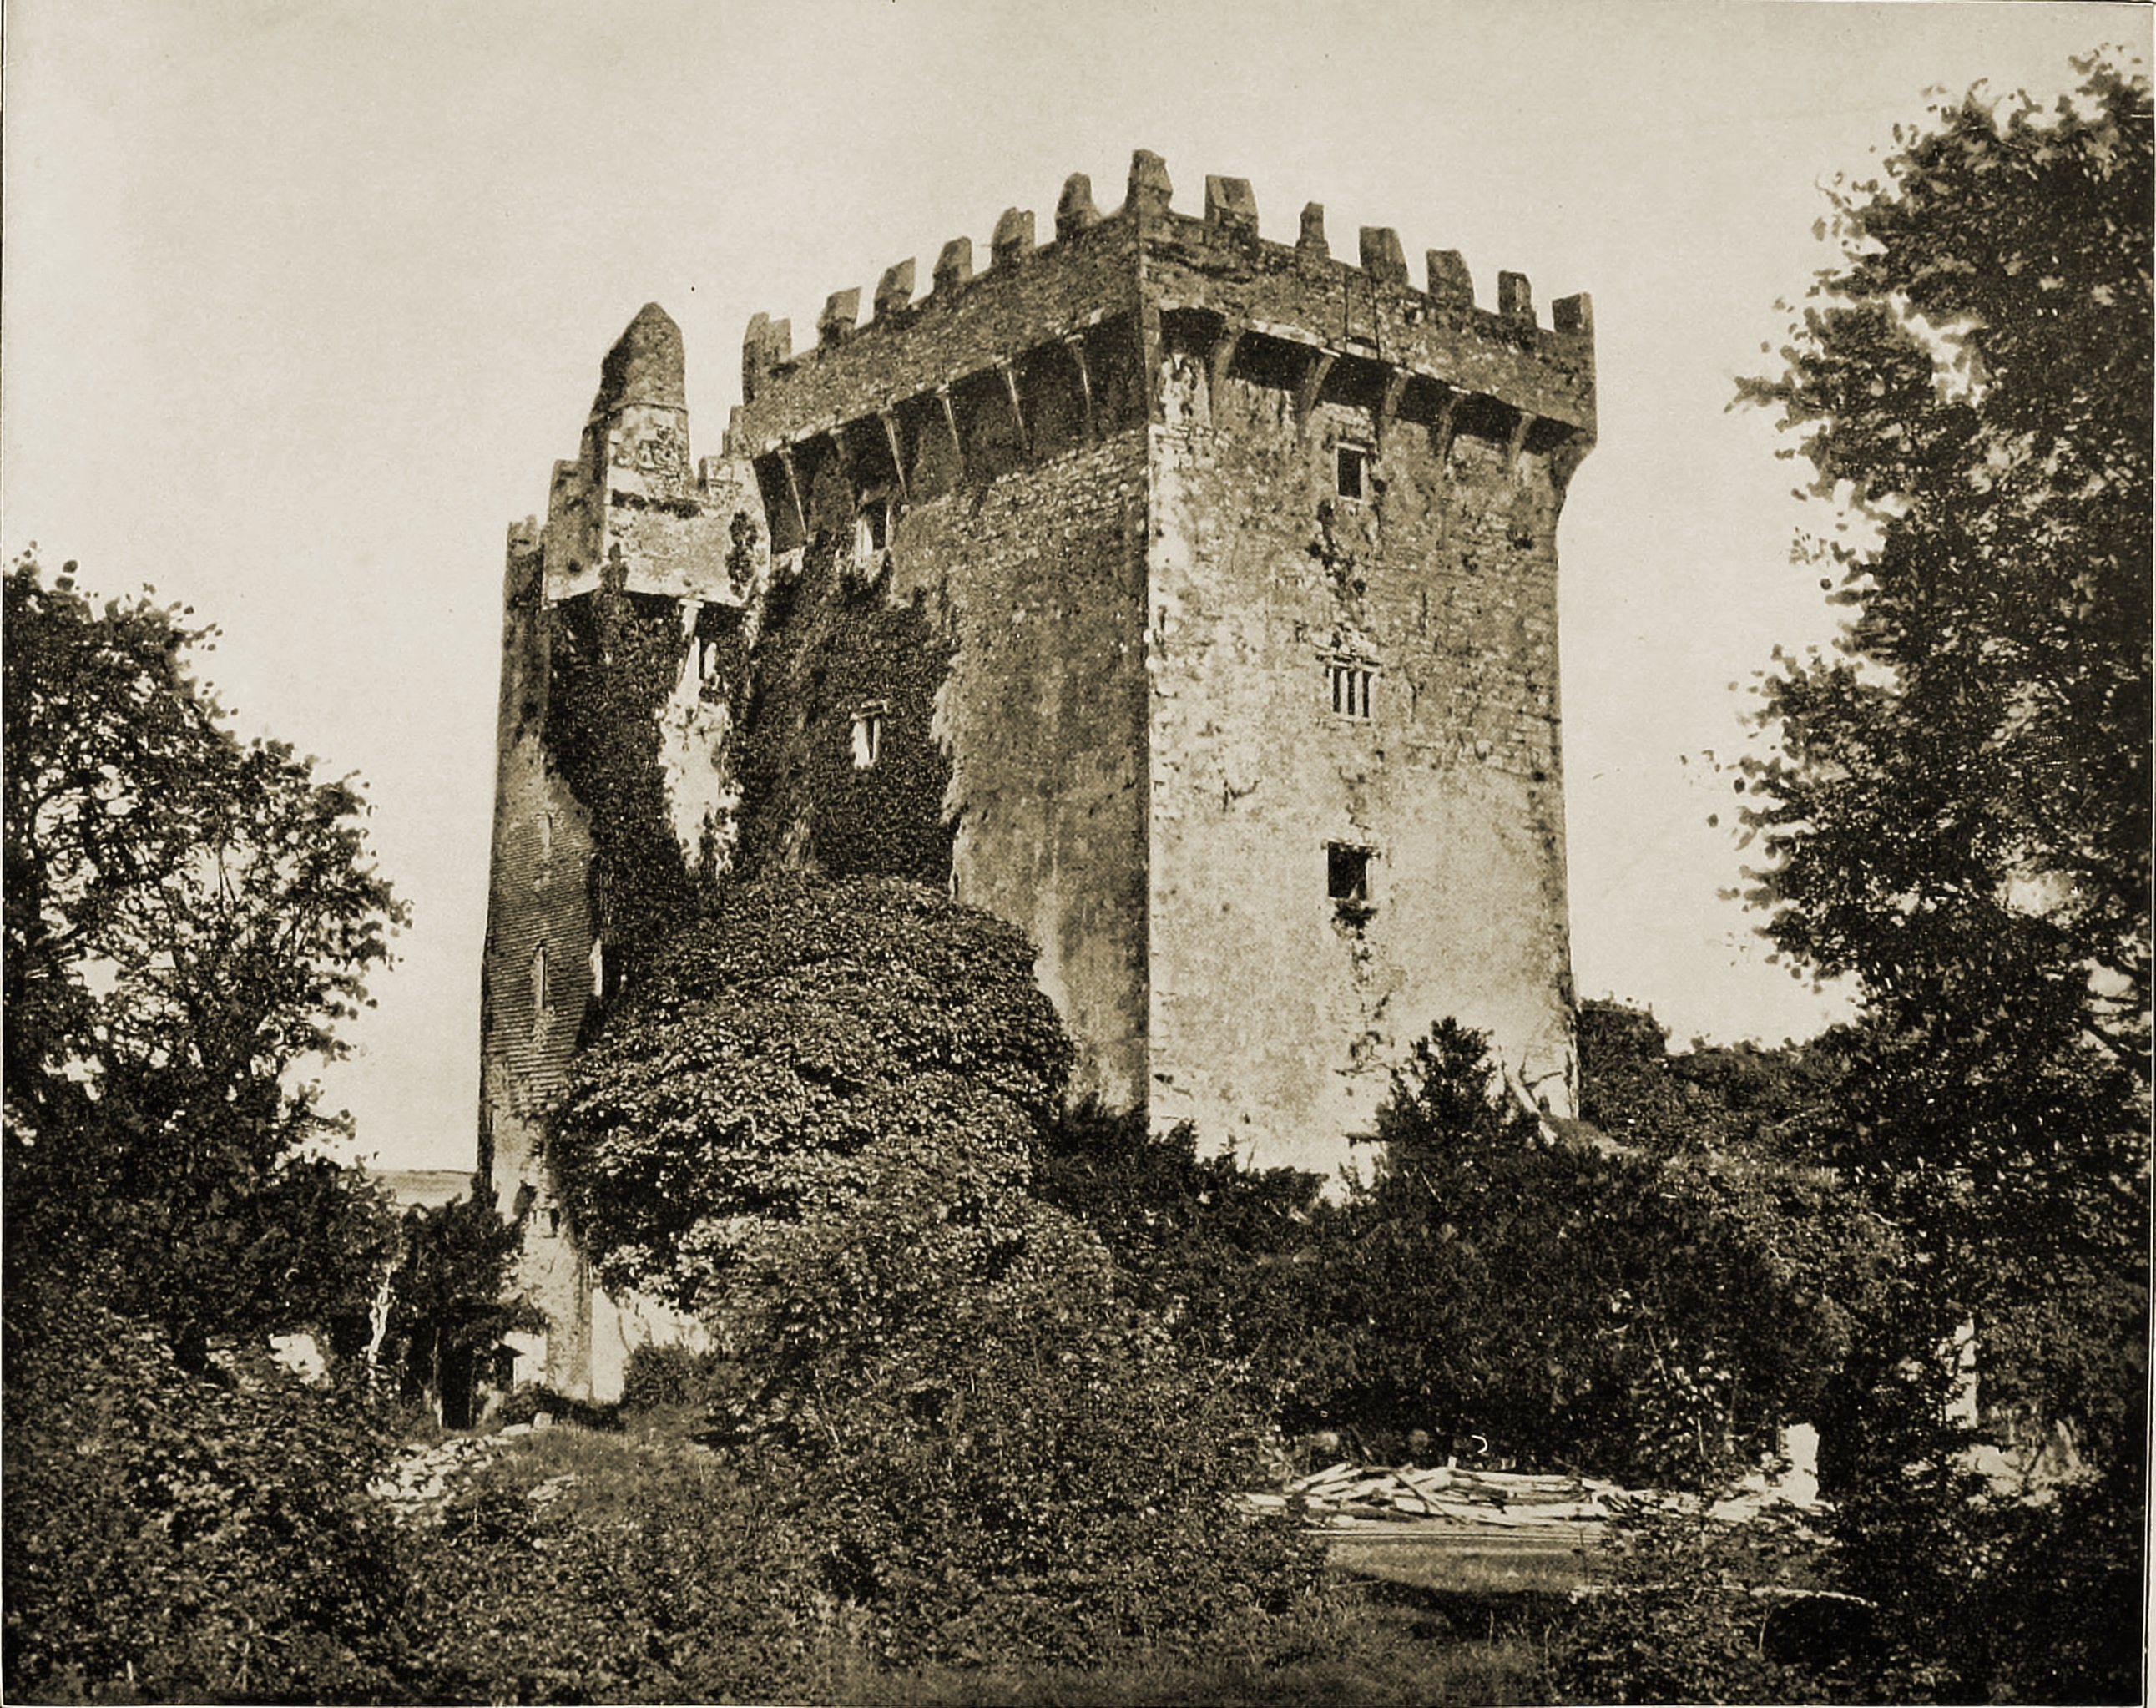 Blarney Castle Ireland about 1892